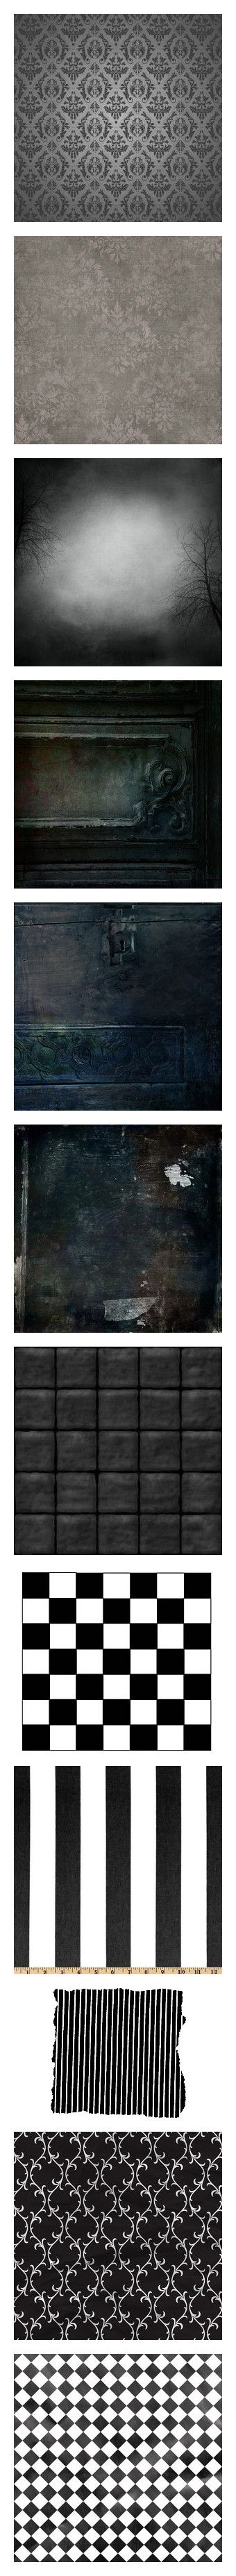 """""""~ backgrounds (1) ~"""" by elsakurppa ❤ liked on Polyvore featuring backgrounds, filler, wallpaper, detail, embellishment, halloween, textures, grunge texture, paper and black"""